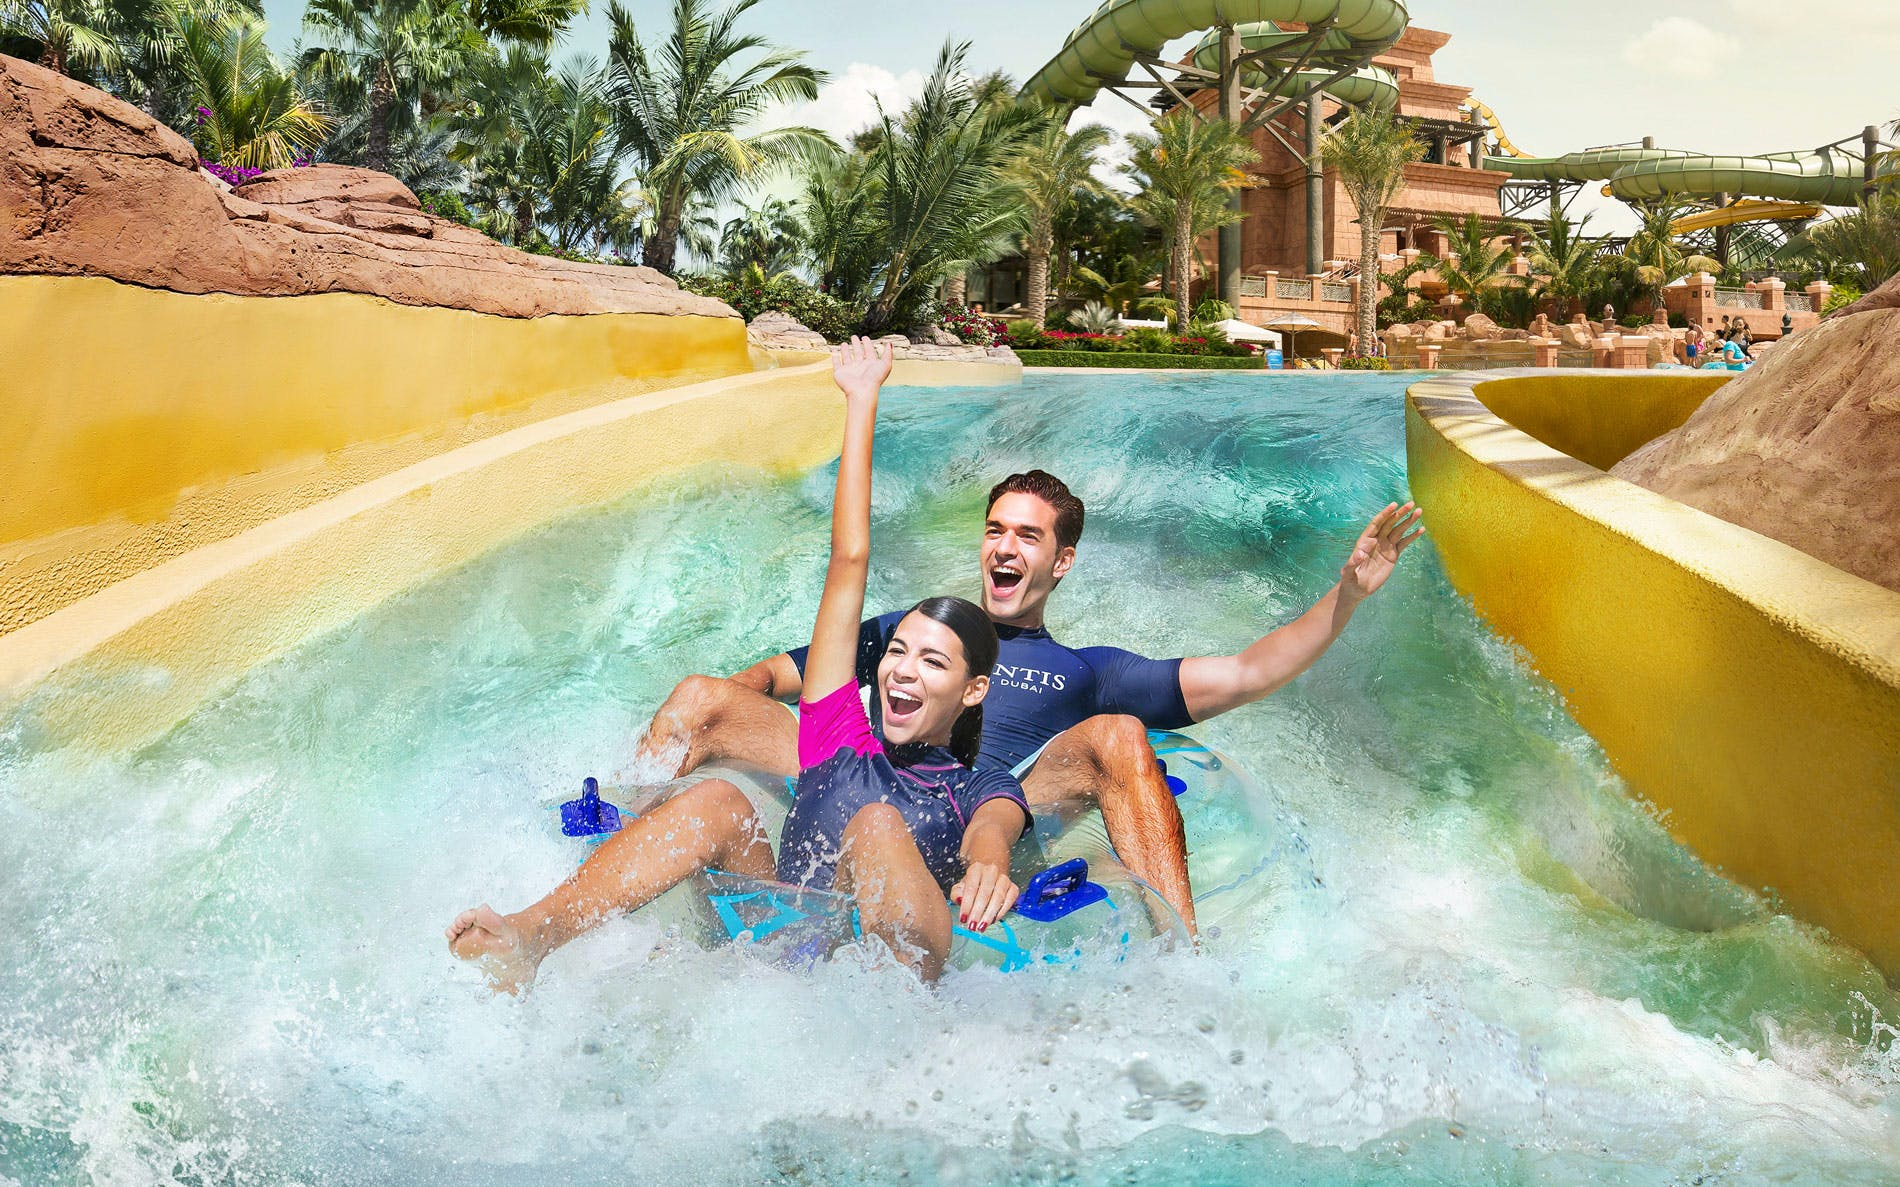 Adventure Combo: Aquaventure Waterpark + 30 mins Jet Ski